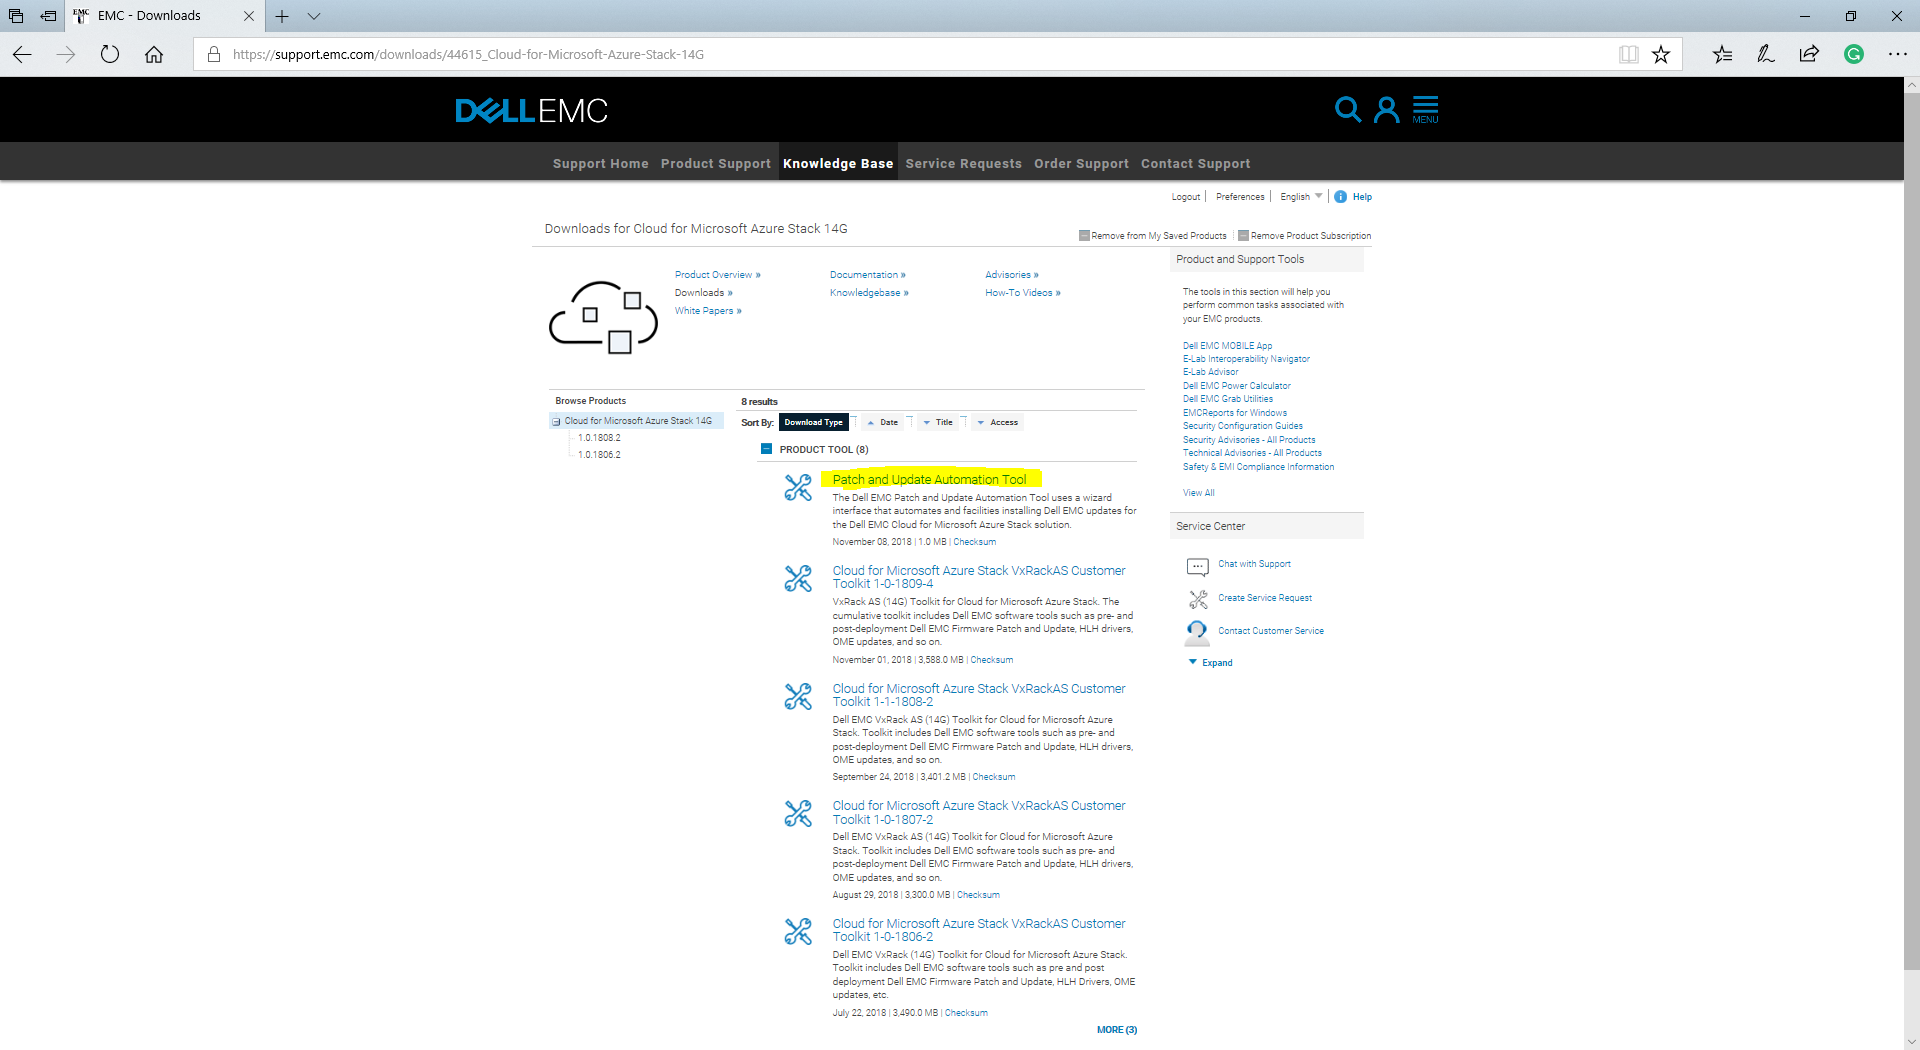 Patch and Update Automation Tool for Dell EMC VxRack Azure Stack 14G